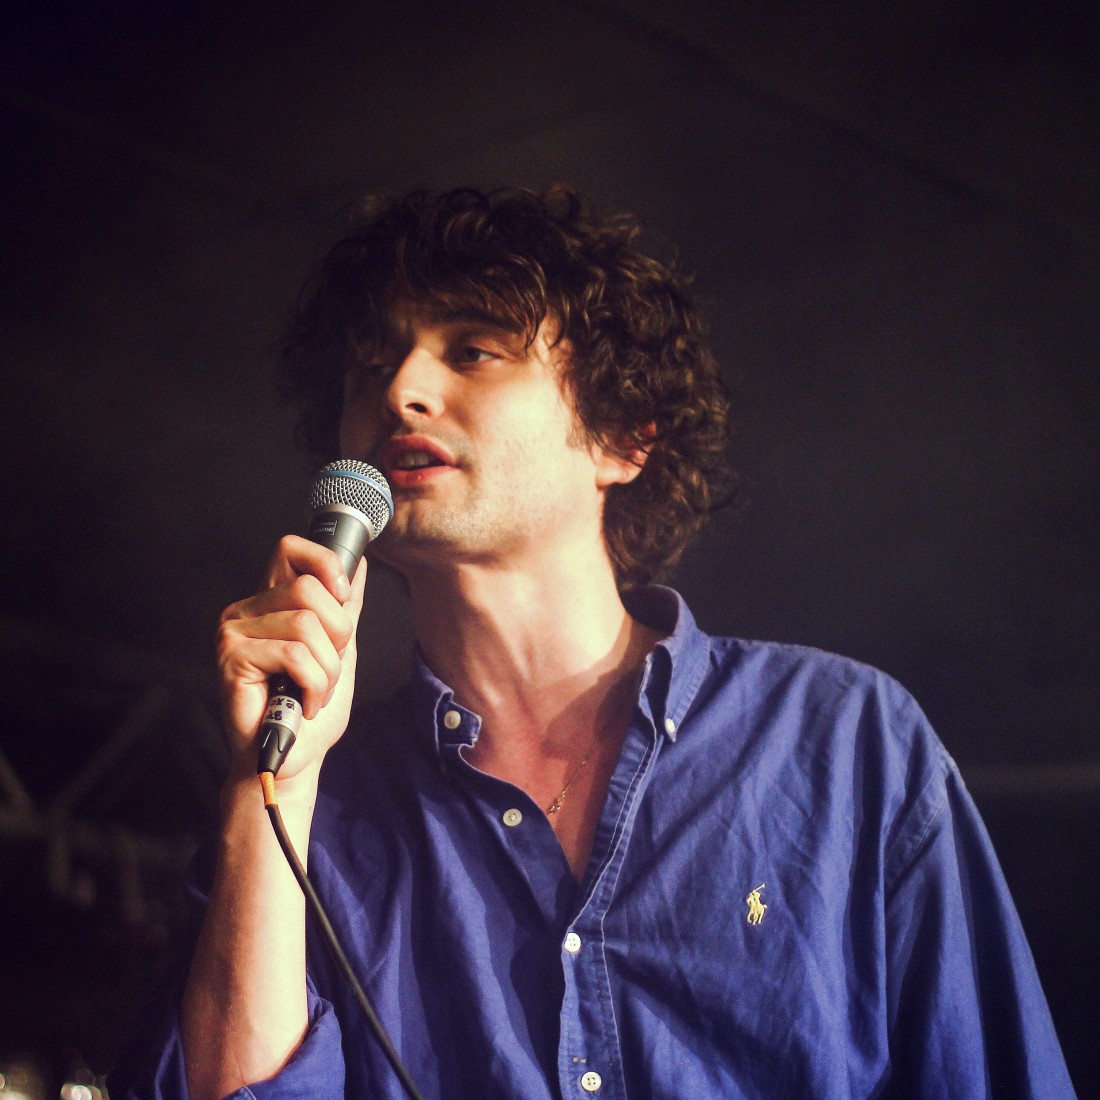 Flyte playing The Great Escape Festival in Brighton on 18.05.17